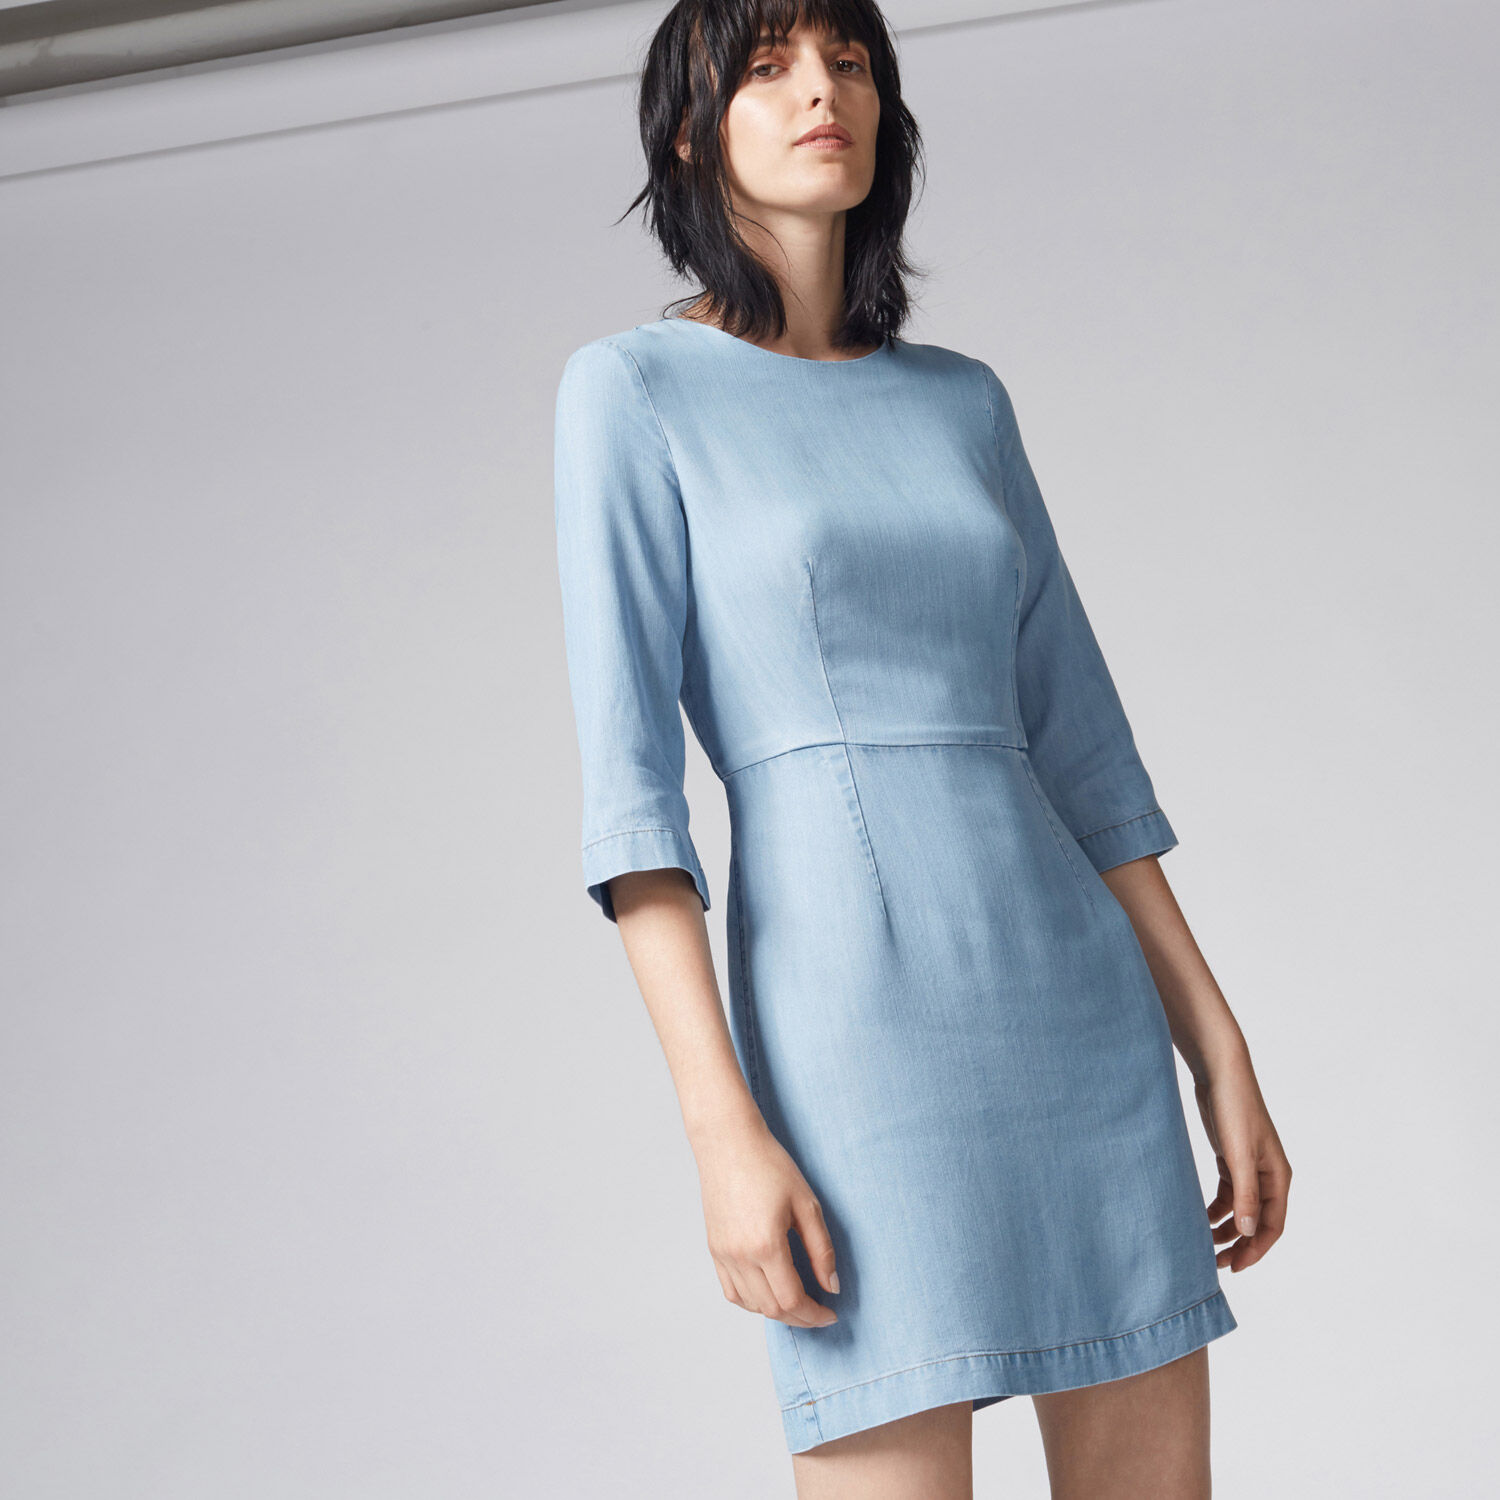 Warehouse, CLEAN FIT AND FLARE DRESS Light Wash Denim 1